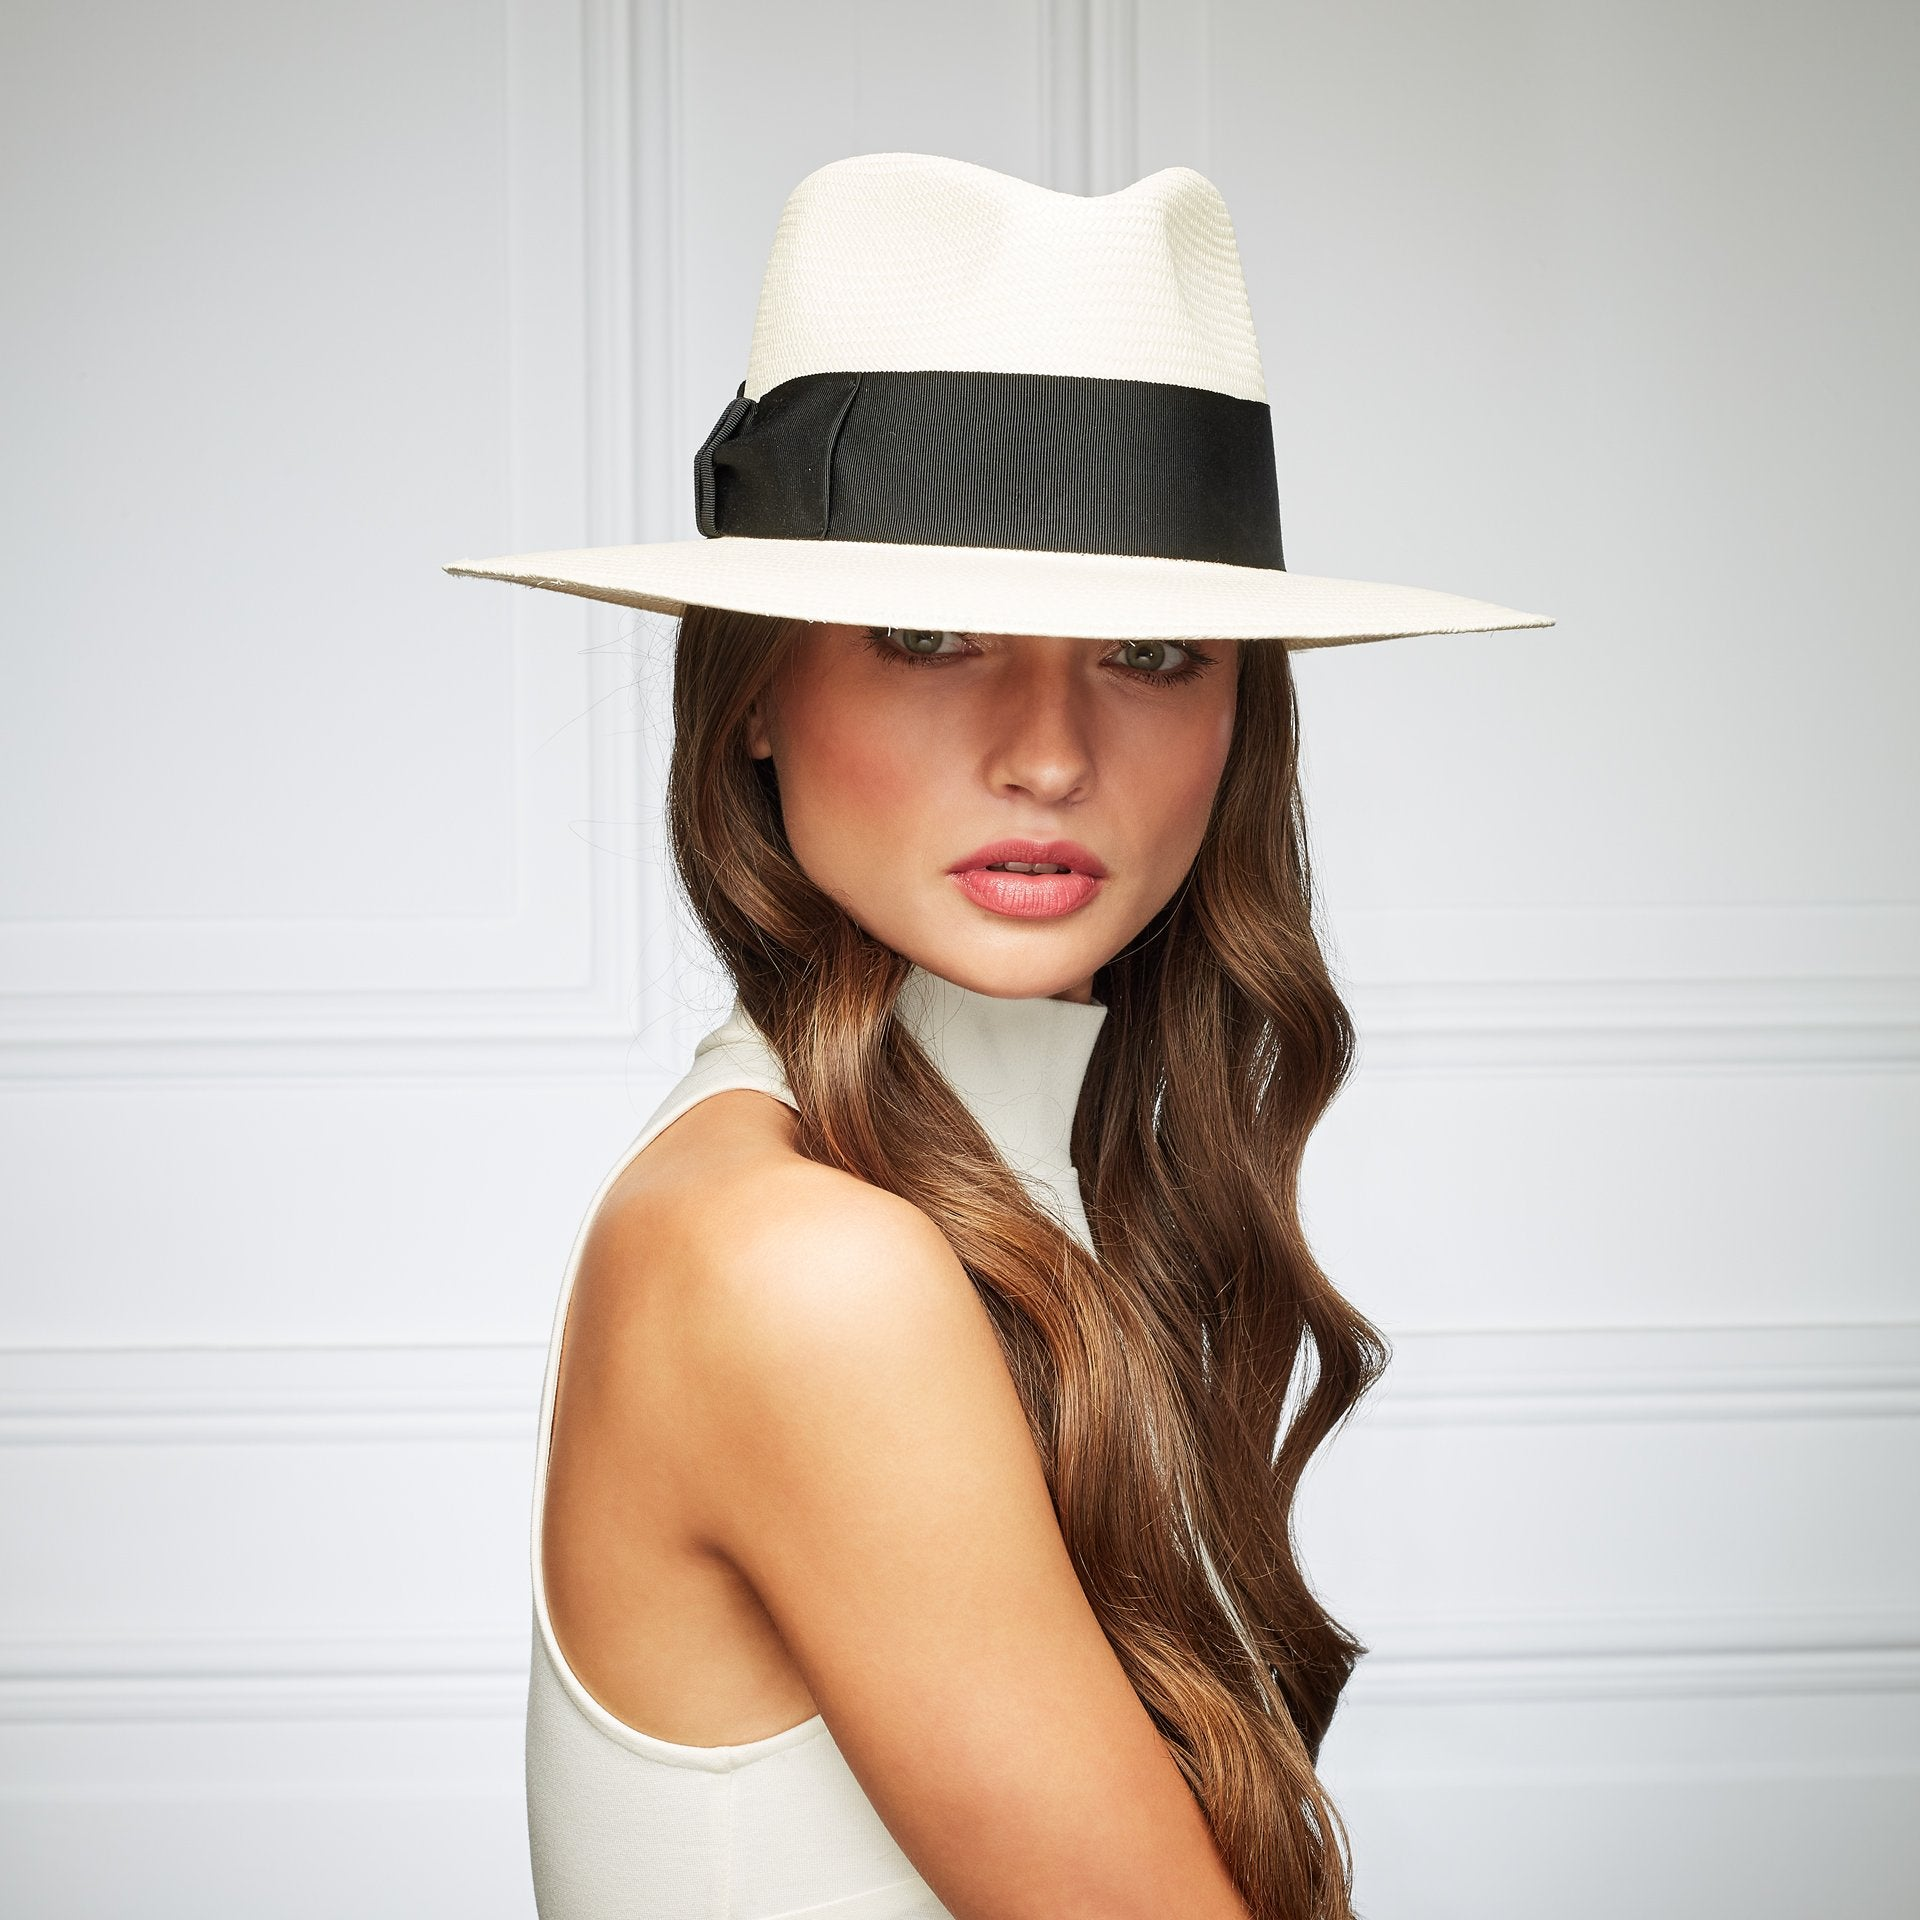 Peacehaven Panama - Panamas, Straw and Sun Hats for Women - Lock & Co. Hatters London UK